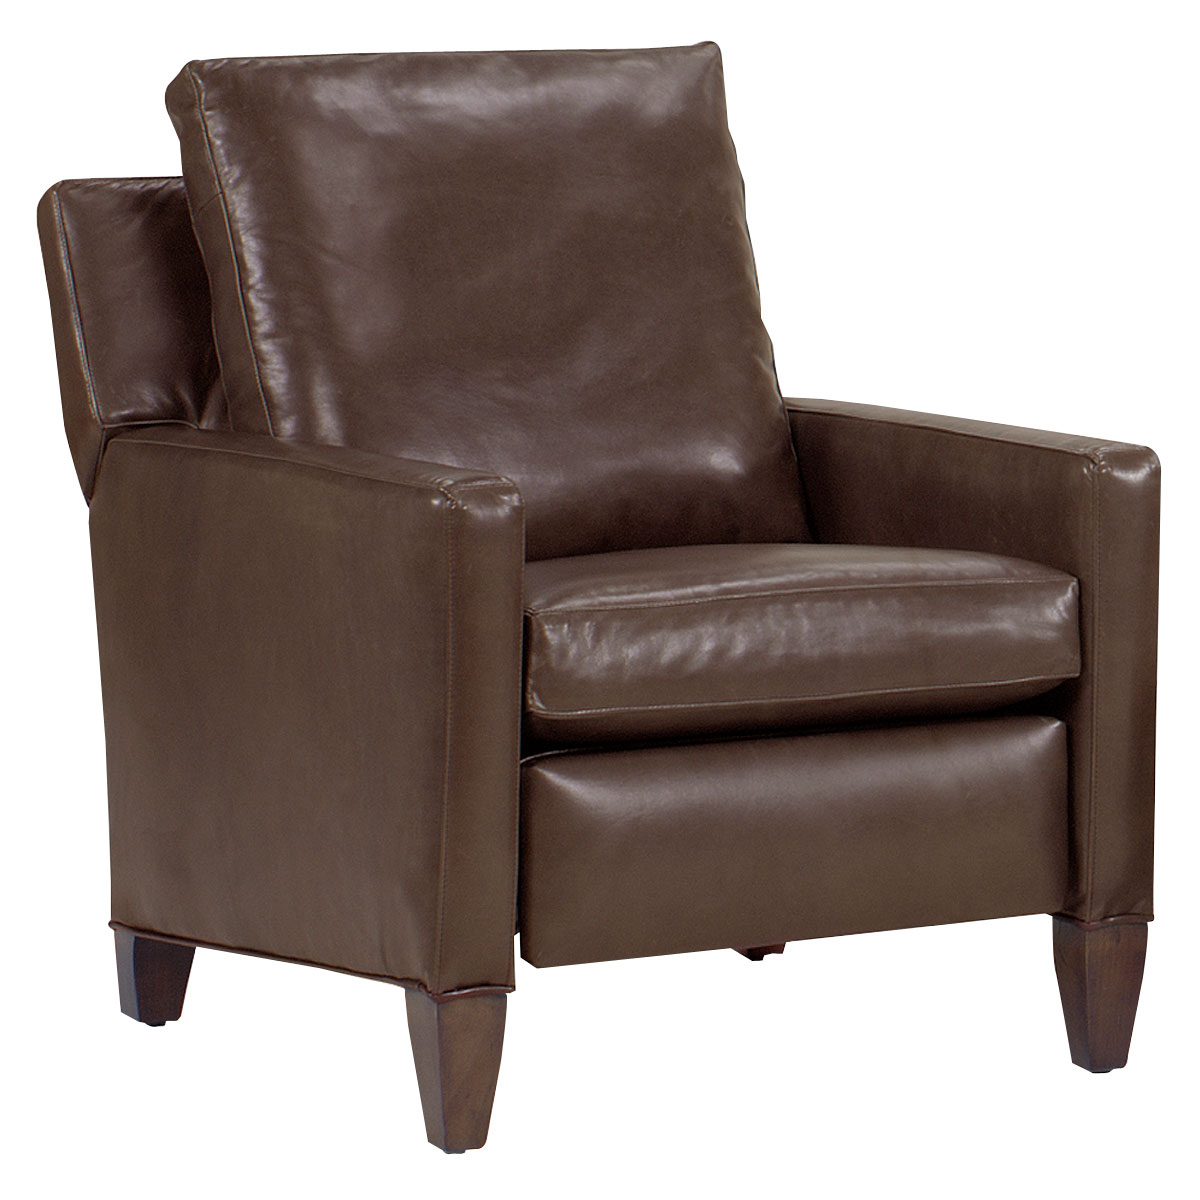 Alvin quot designer style quot tall leg leather reclining chair leather